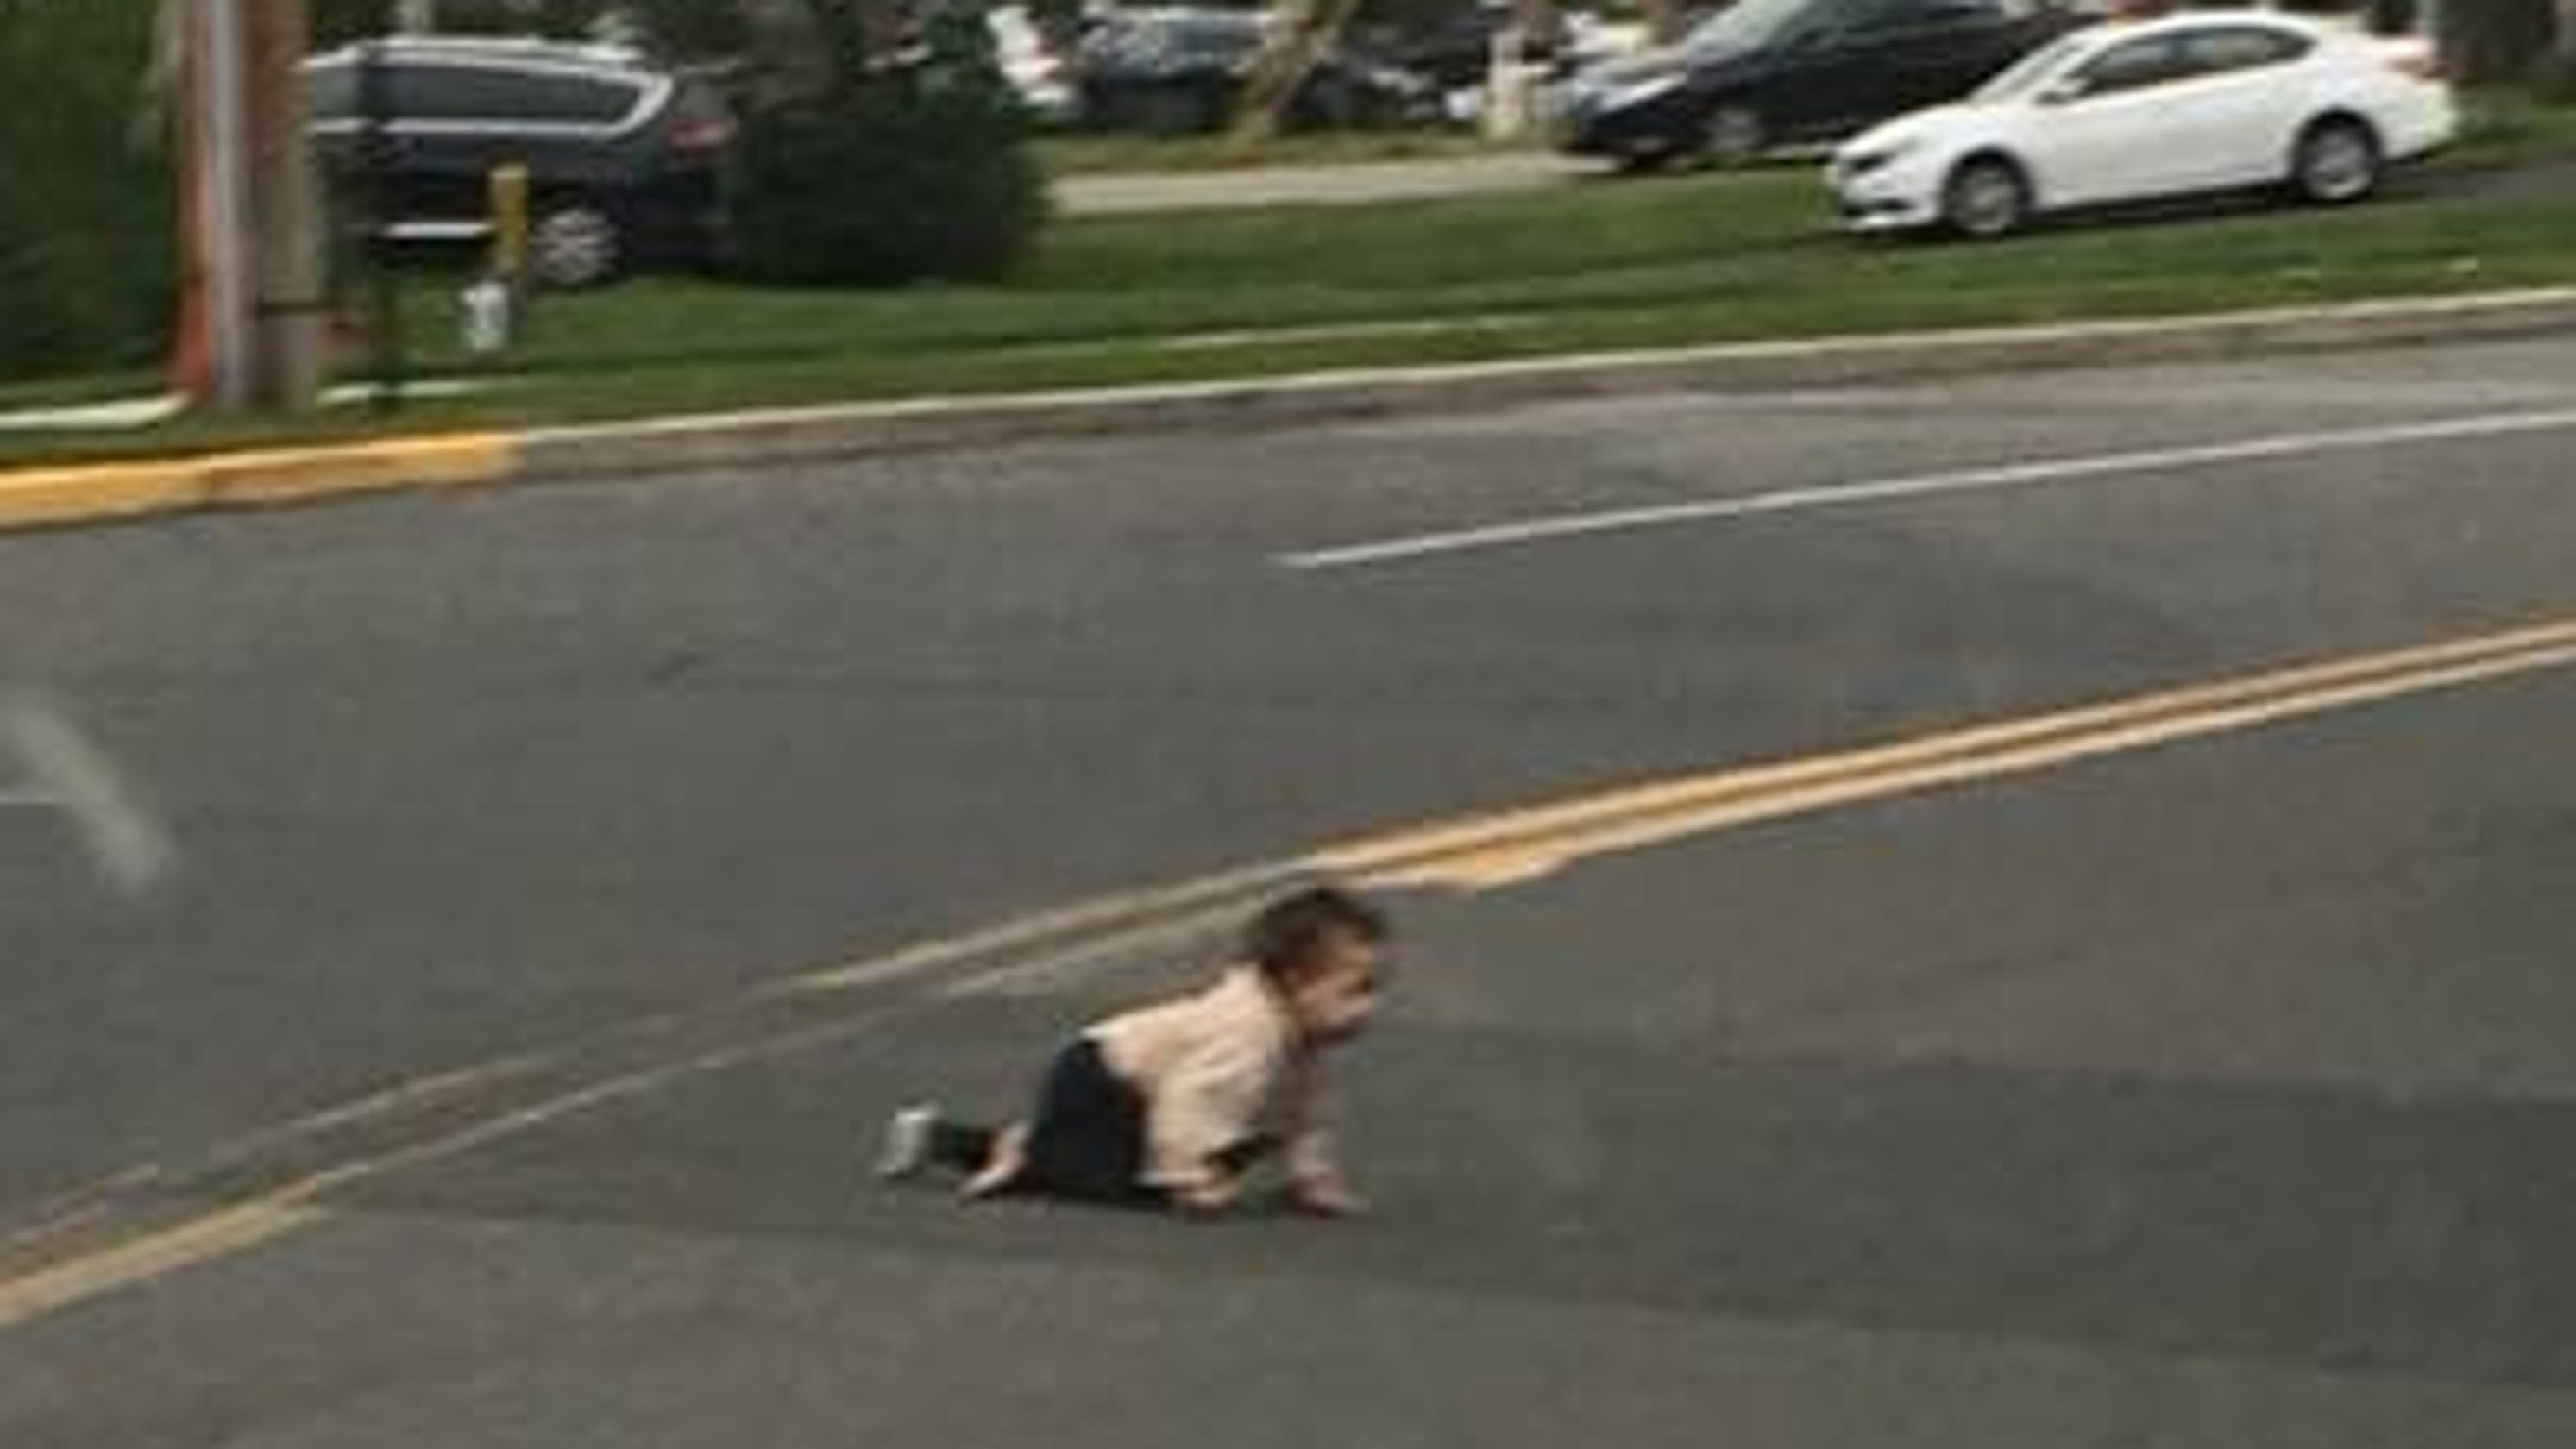 Lakewood: Baby crawls across street in traffic in